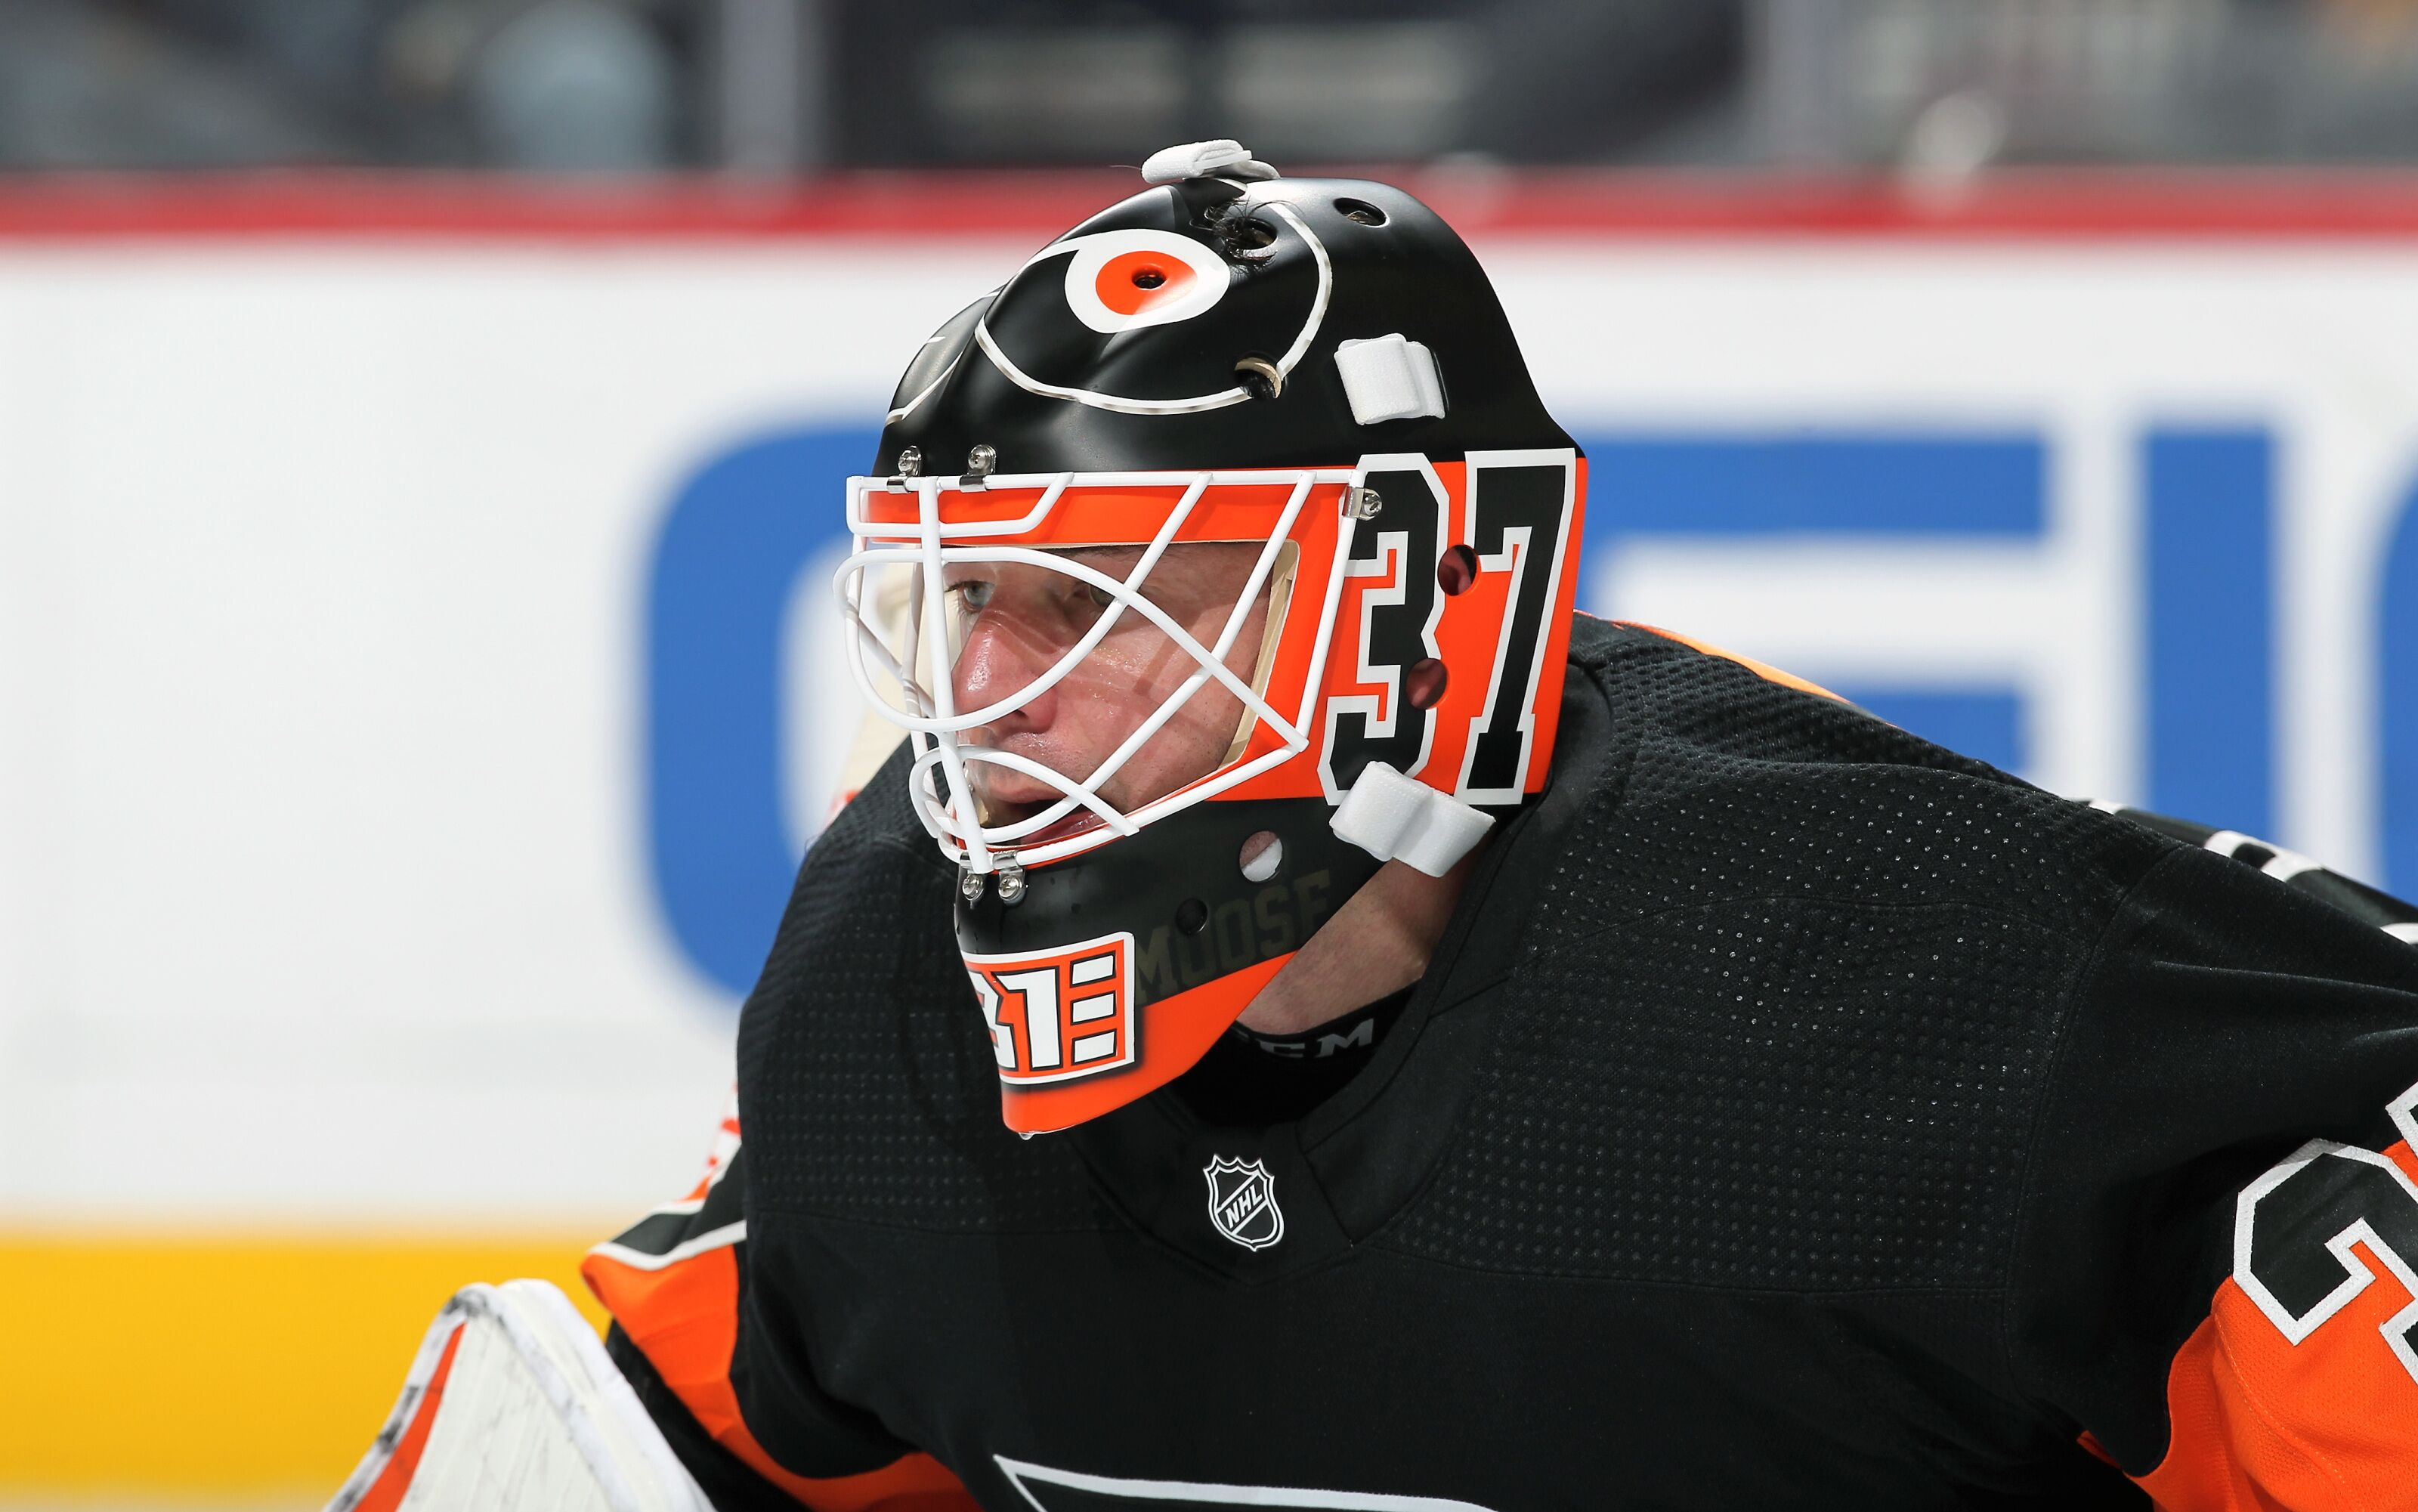 Philadelphia Flyers: Brian Elliott out two weeks with lower body injury